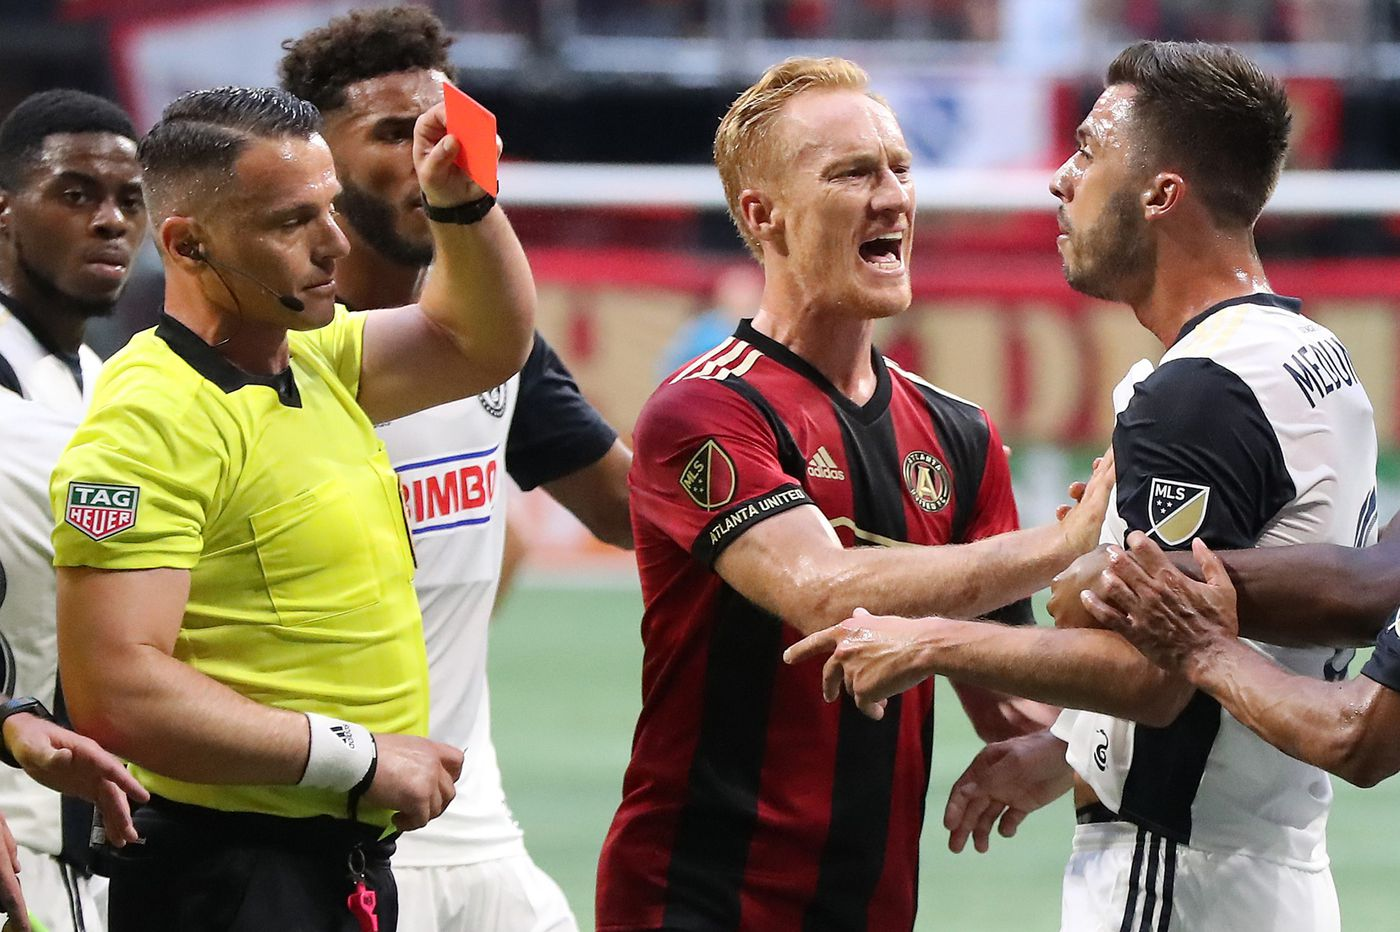 Union appeal Alejandro Bedoya red card, blast Haris Medunjanin spitting charge